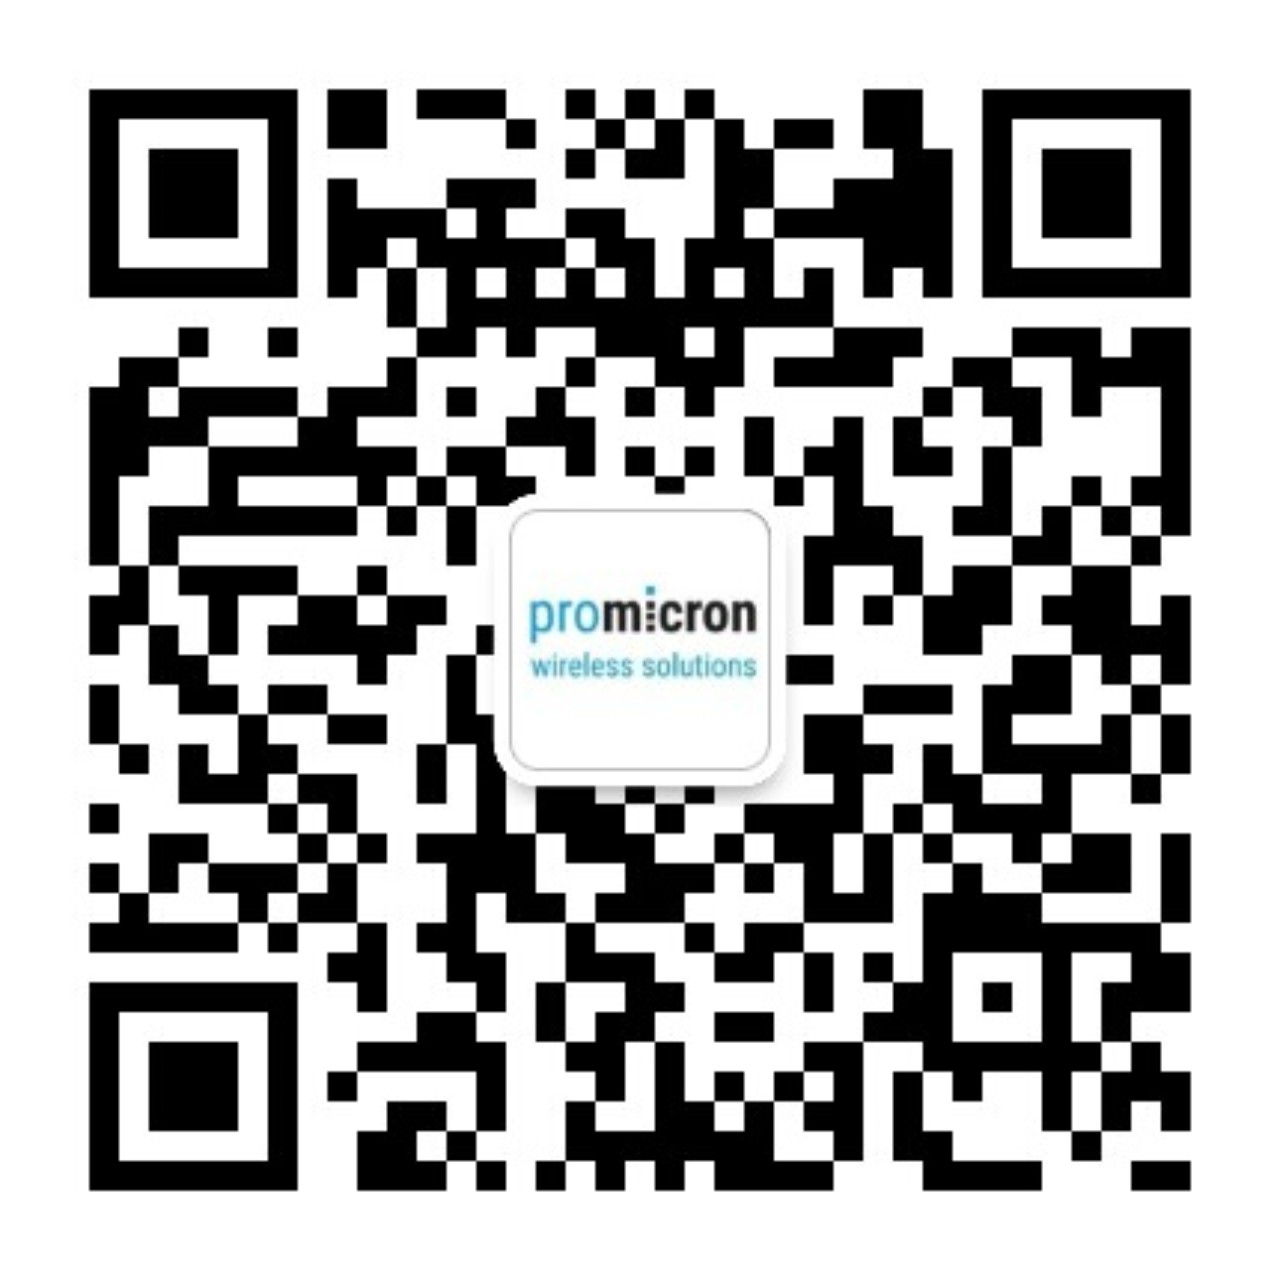 qrcode_for_pmwechat